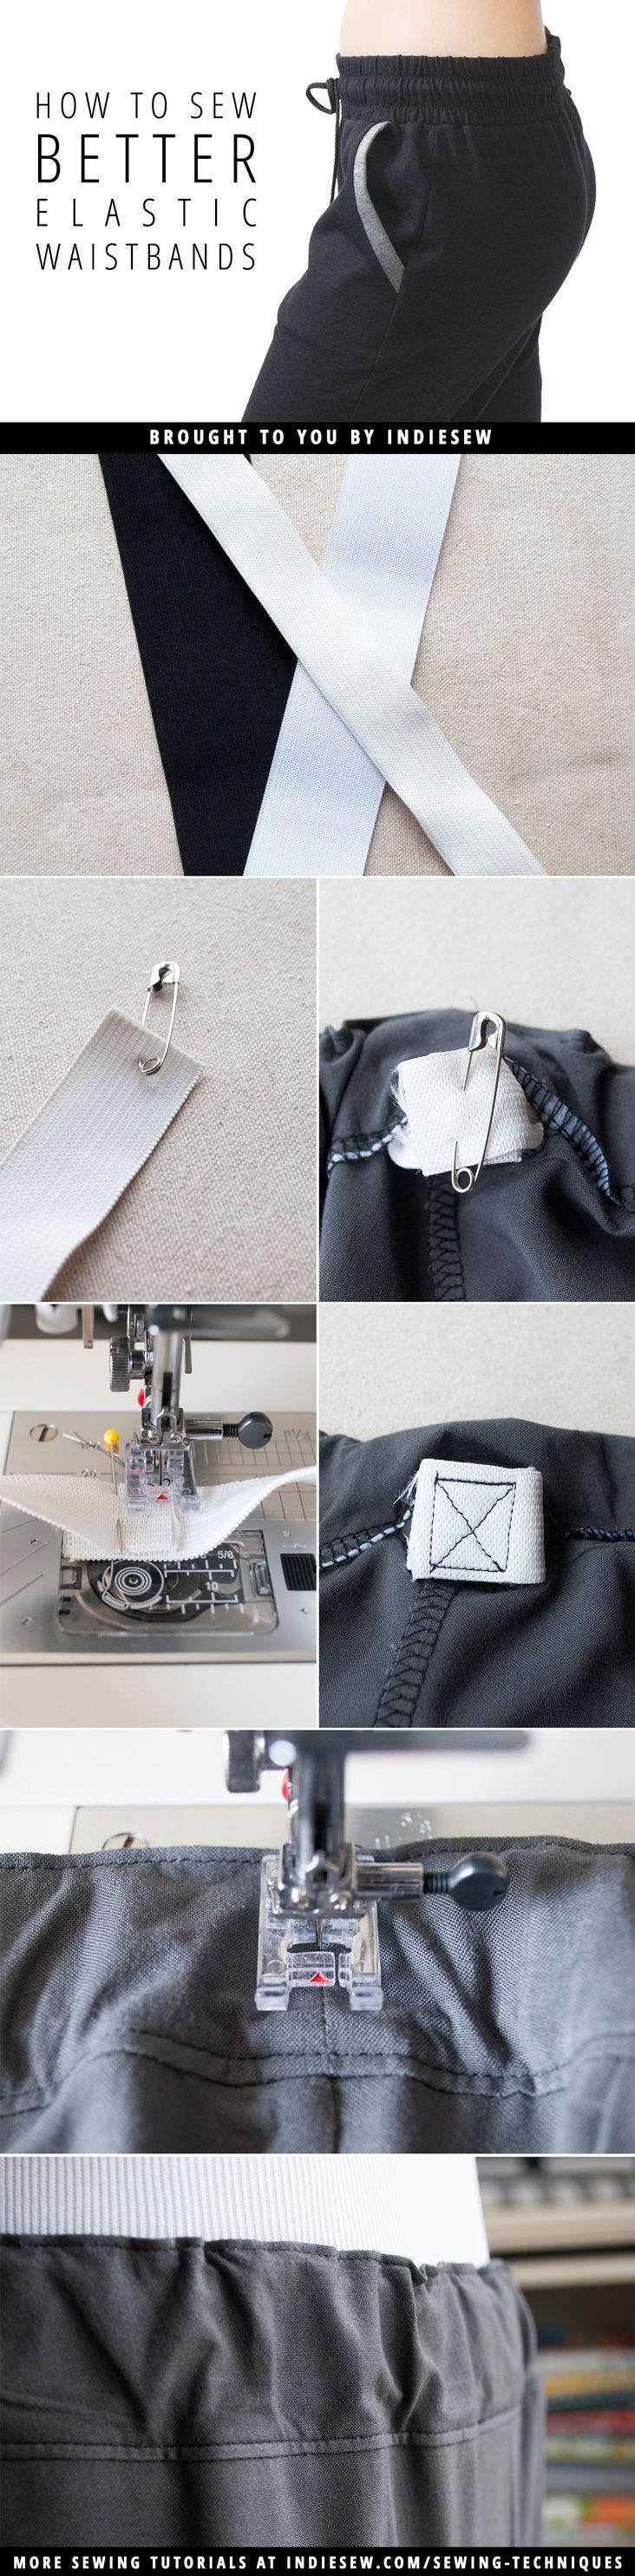 Do you struggle with elastic waistbands that twist inside their casings? Read this post to learn some handy tricks for picture perfect waistbands.   Indiesew.com